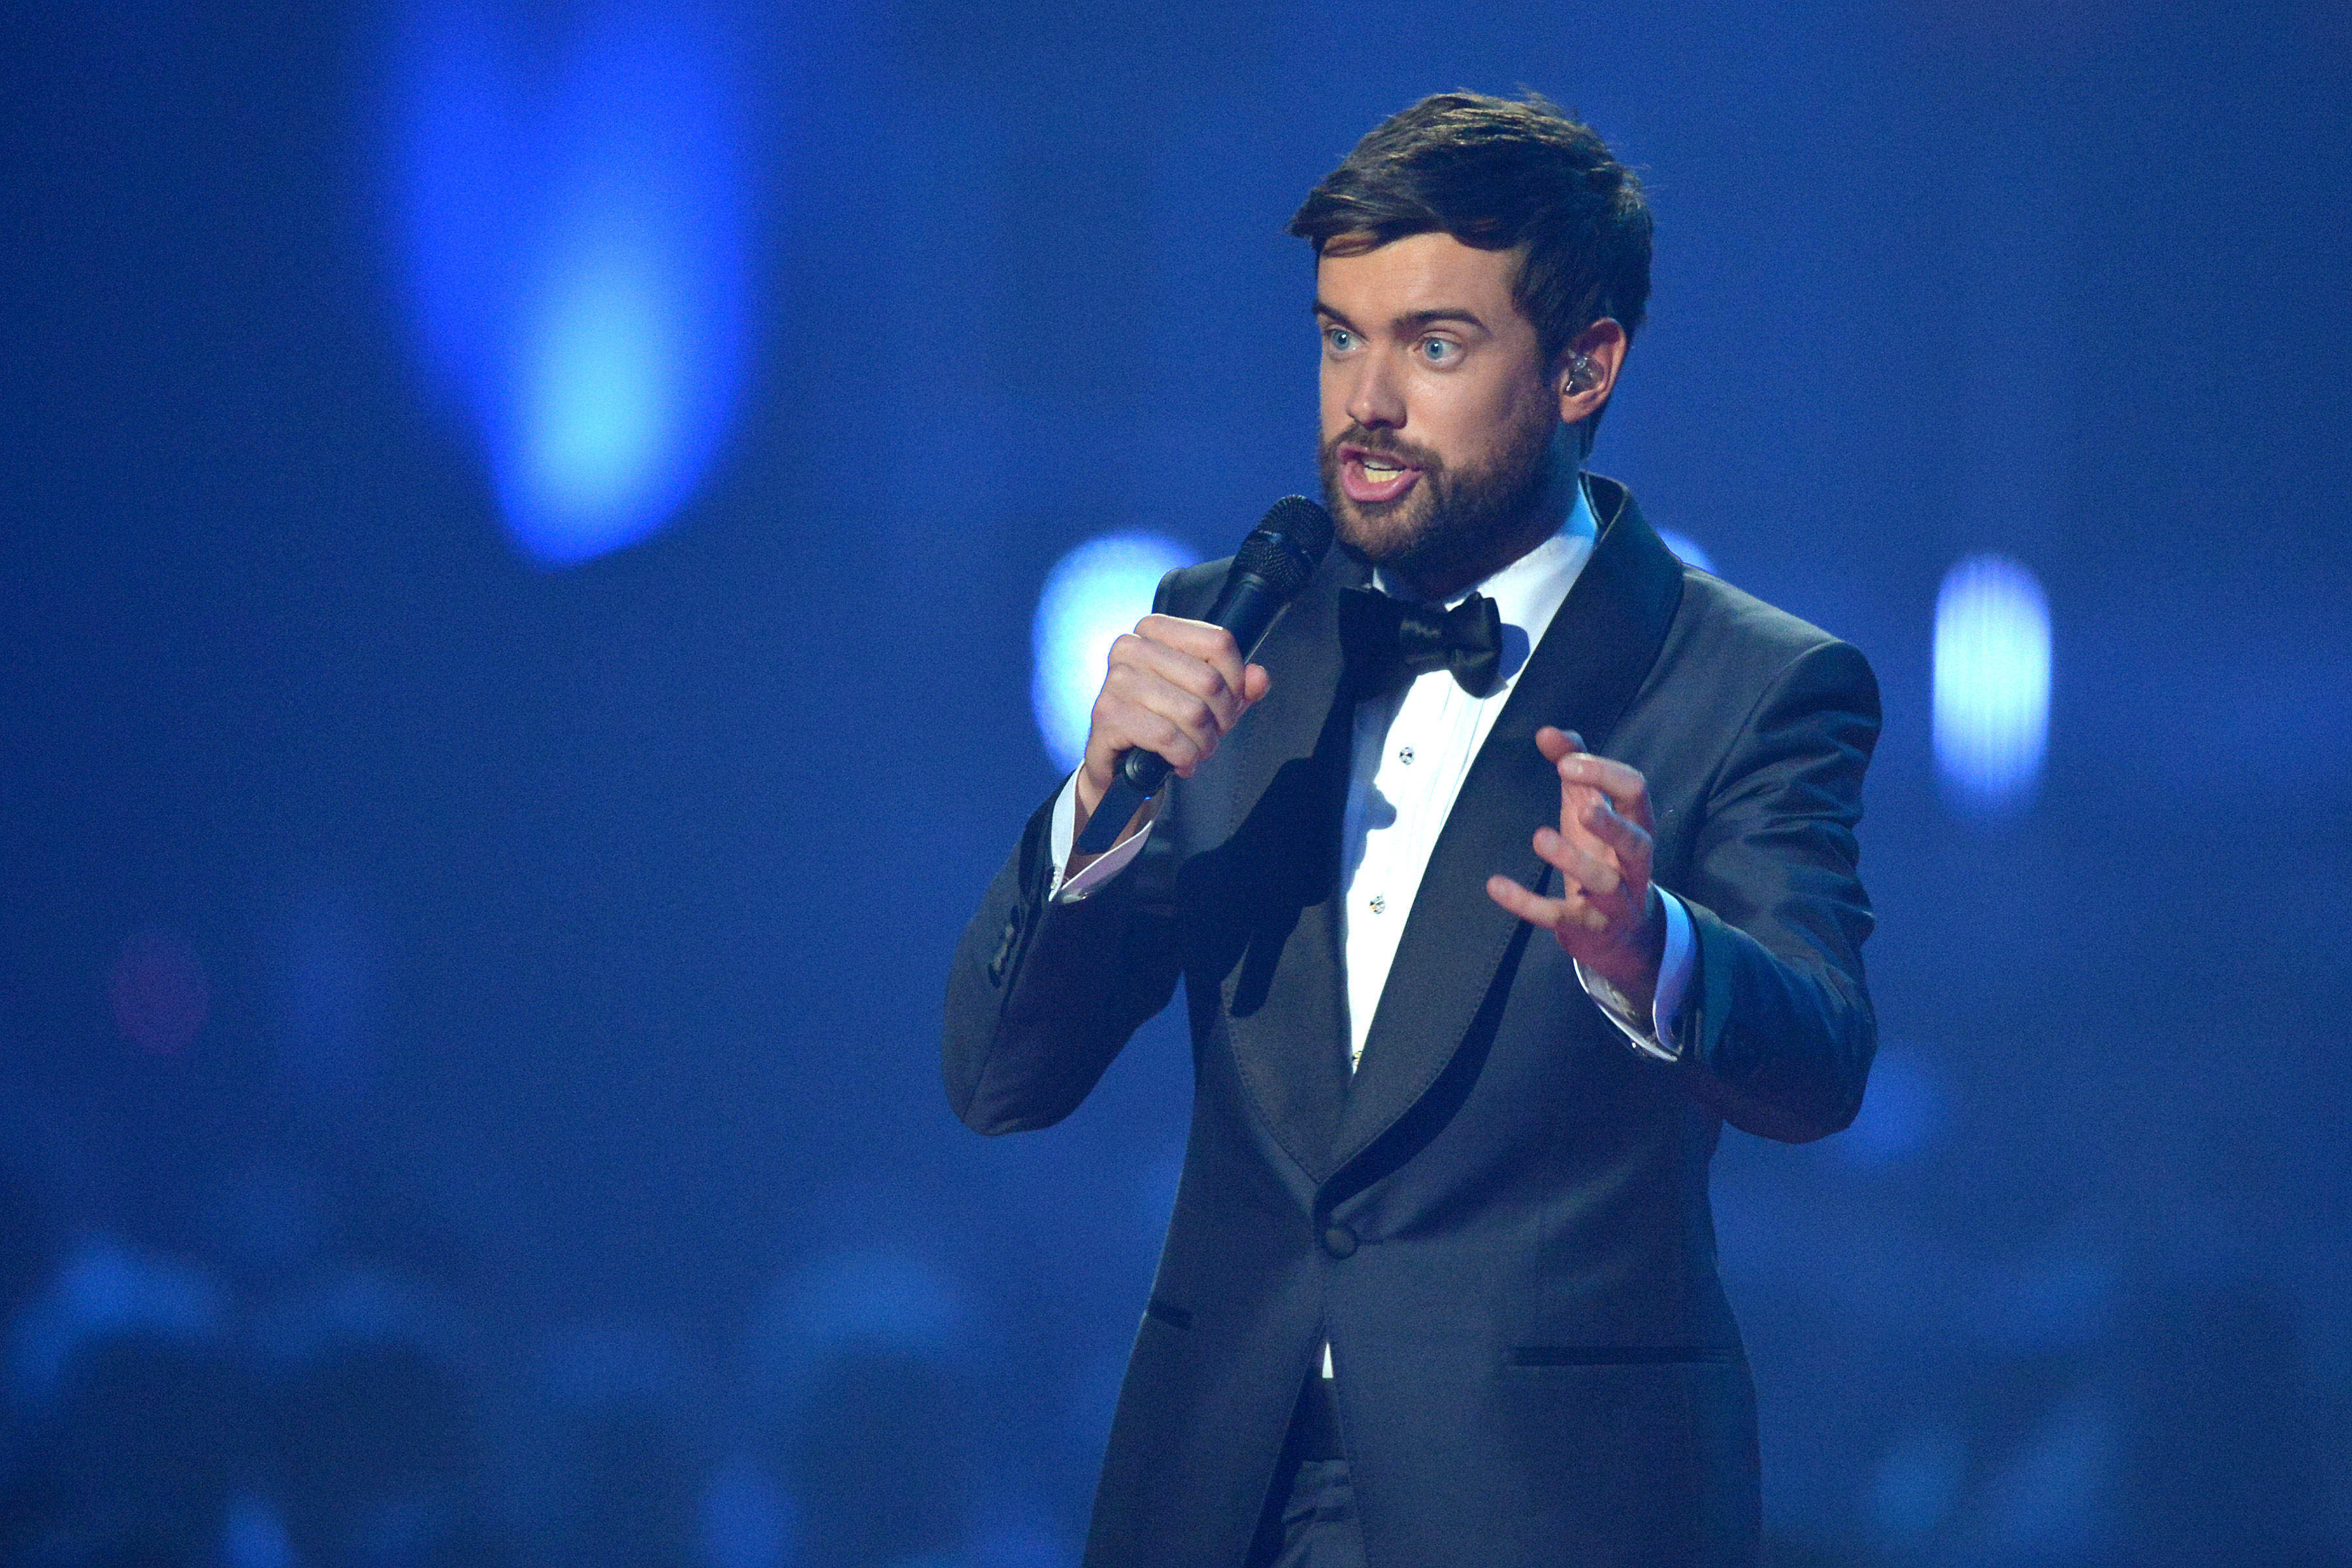 LONDON, ENGLAND - FEBRUARY 18: (EDITORIAL USE ONLY) Comedian Jack Whitehall presents on stage during The BRIT Awards 2020 at The O2 Arena on February 18, 2020 in London, England. (Photo by Jim Dyson/Redferns)